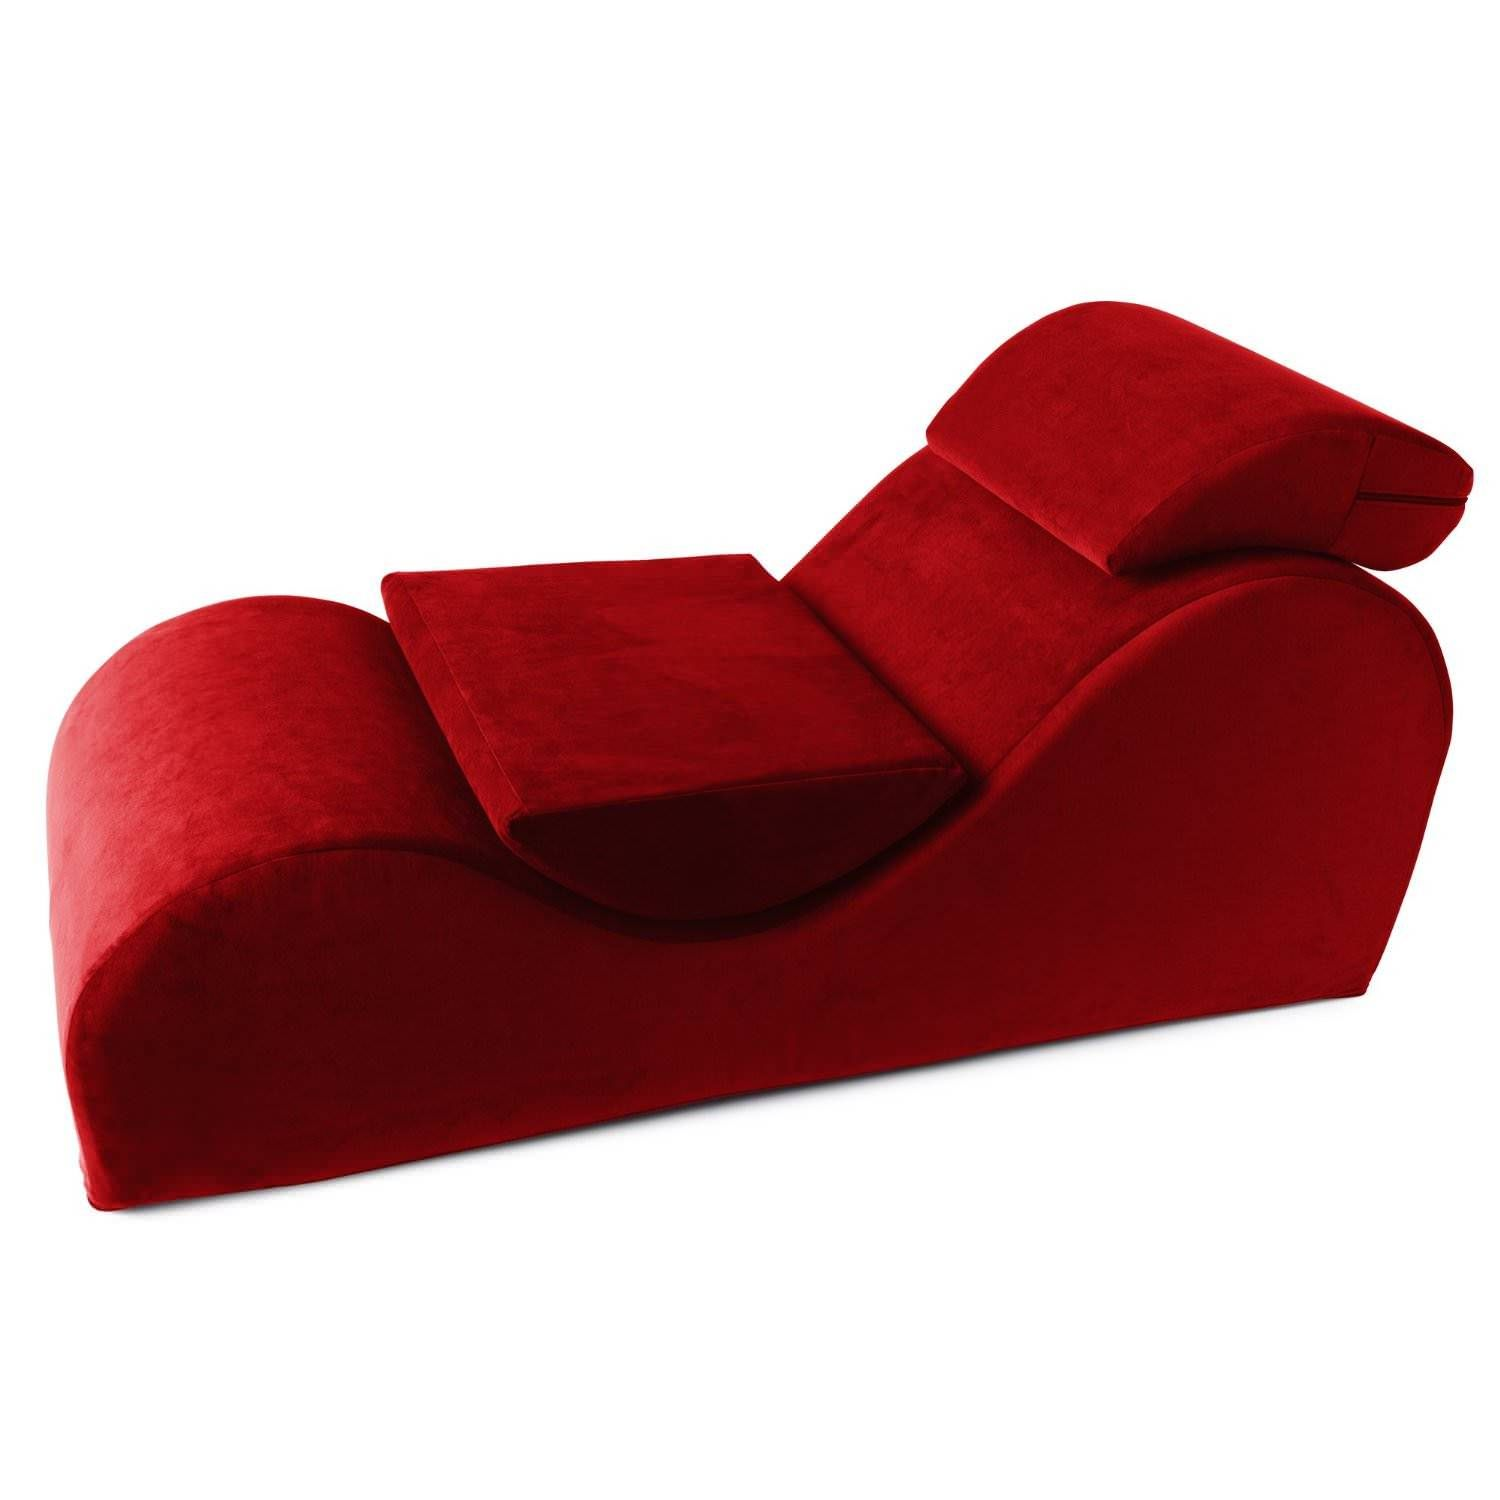 Liberator Bedroom Furniture Invest In Your Marriagebed And Get A Liberator Esse Sex Lounger